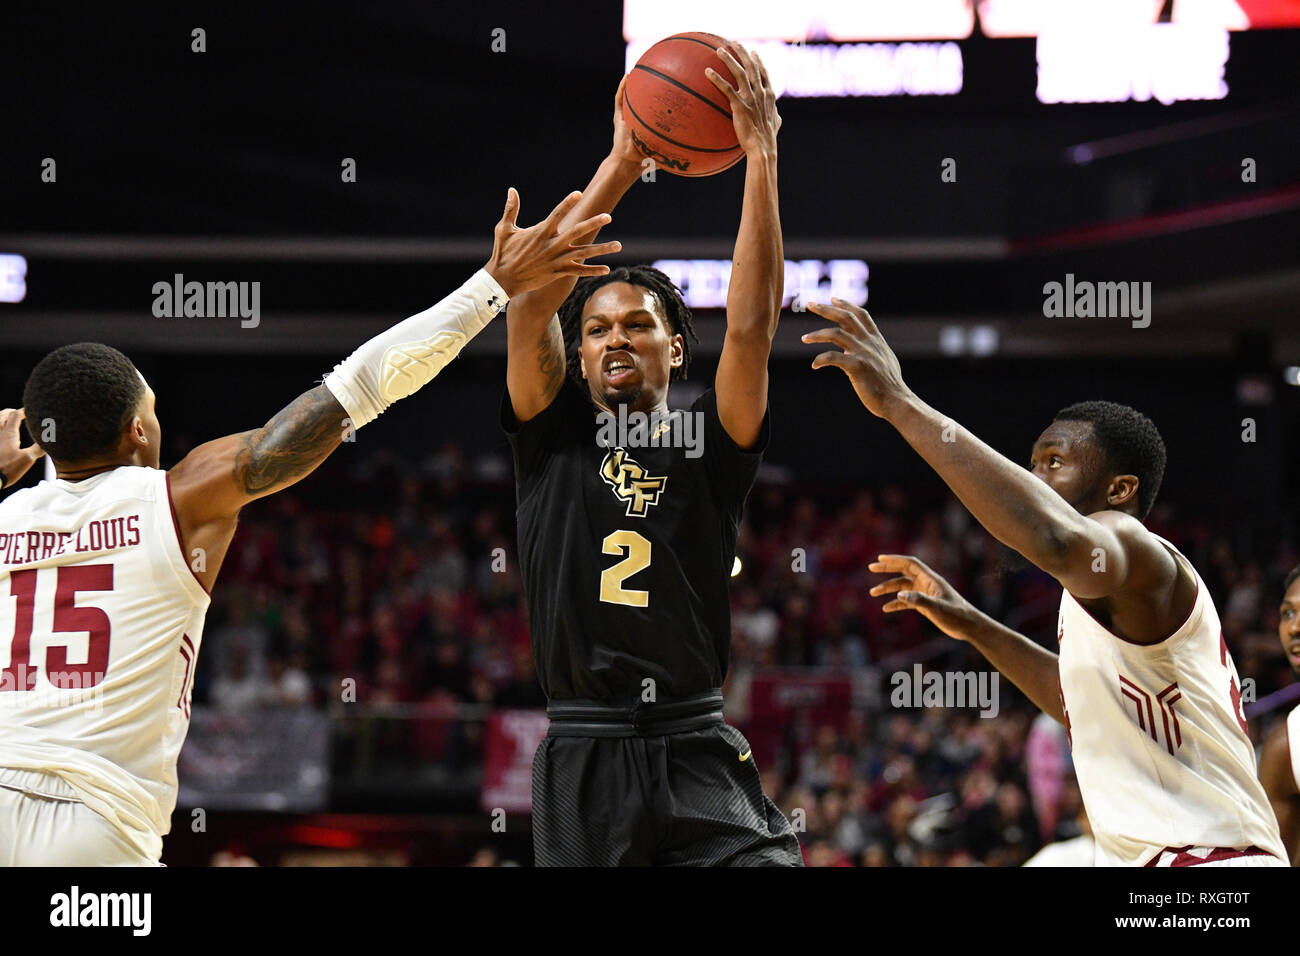 Philadelphia, Pennsylvania, USA. 9th Mar, 2019. UCF Knights guard TERRELL ALLEN (2) is defended by Temple Owls guard NATE PIERRE-LOUIS (15) and center ERNEST AFLAKPUI (24) during the American Athletic Conference basketball game played at the Liacouras Center in Philadelphia. Temple beat #25 UCF 67-62. Credit: Ken Inness/ZUMA Wire/Alamy Live News - Stock Image